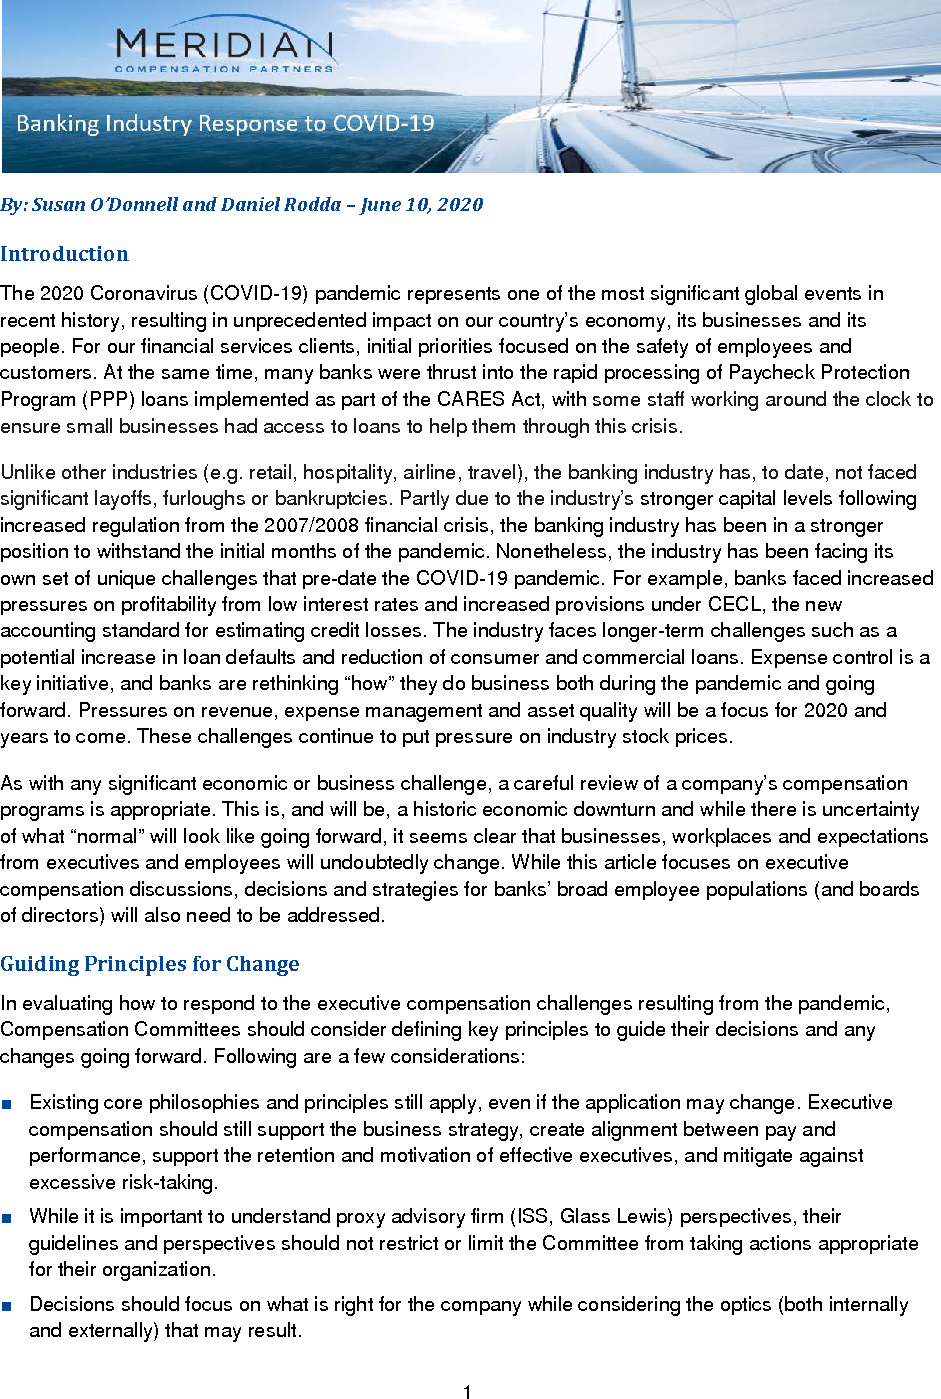 Banking Industry Response to COVID-19 (PDF)